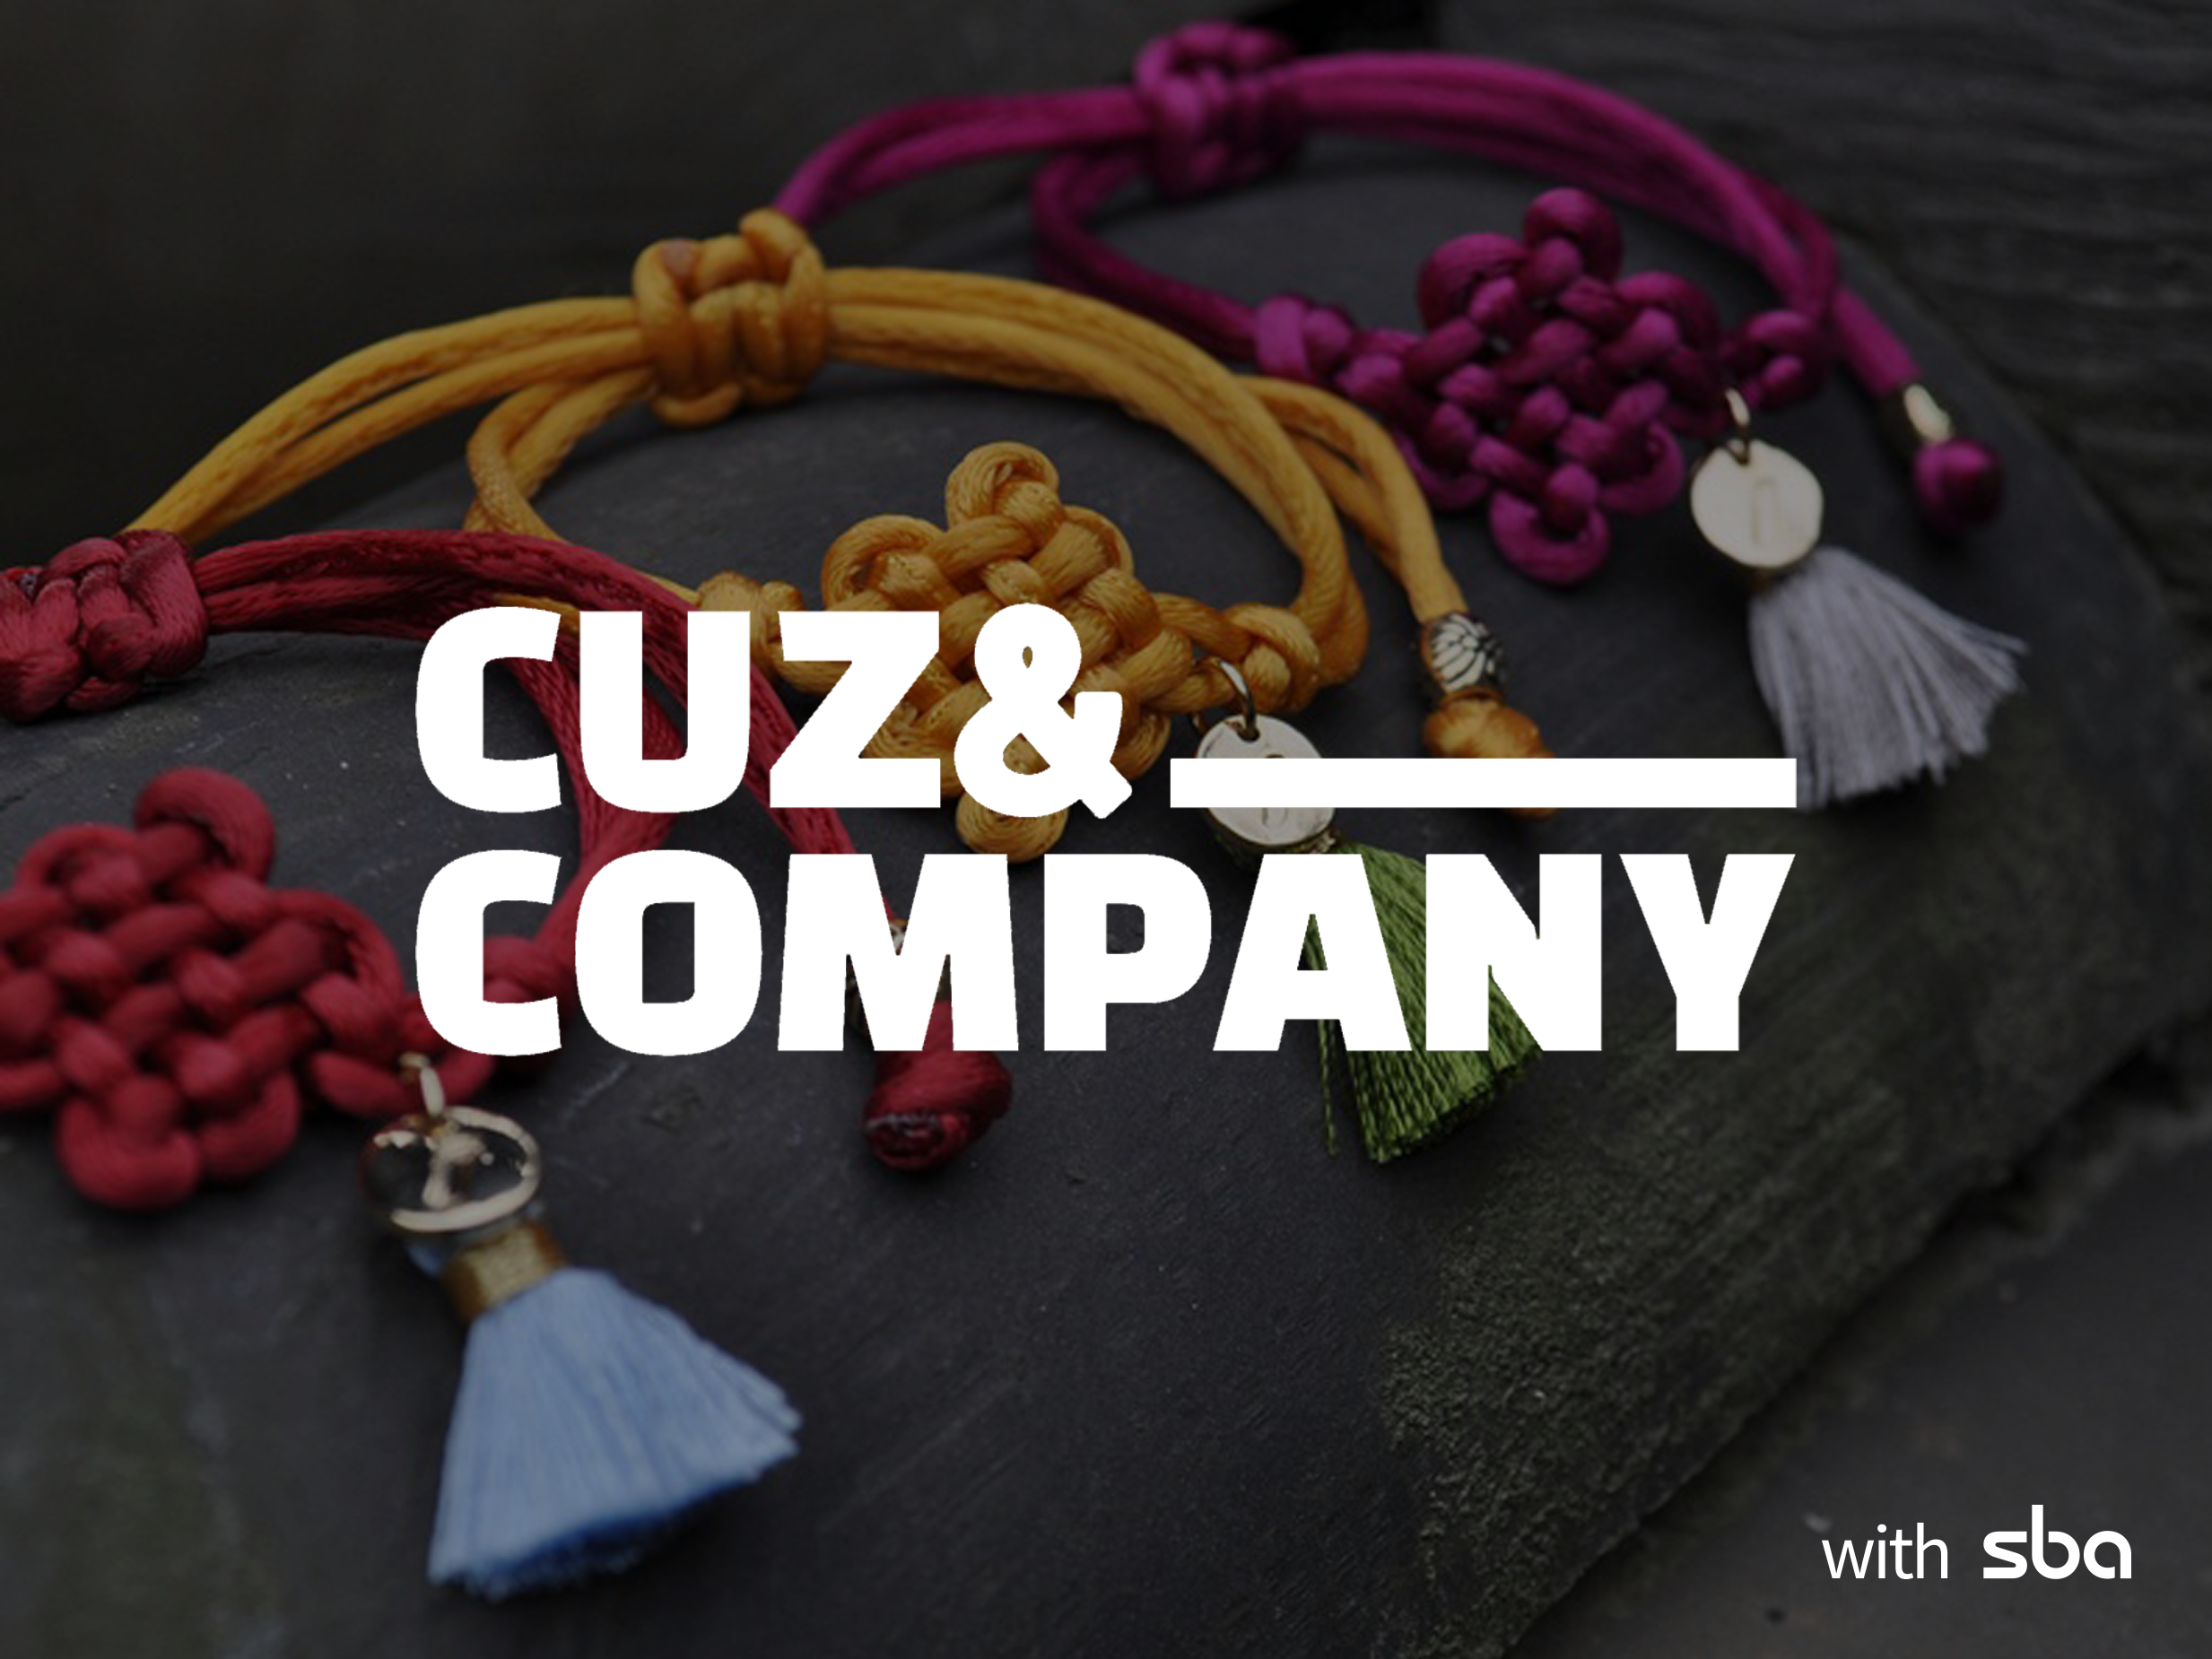 cuzncompany banner_with sba.png